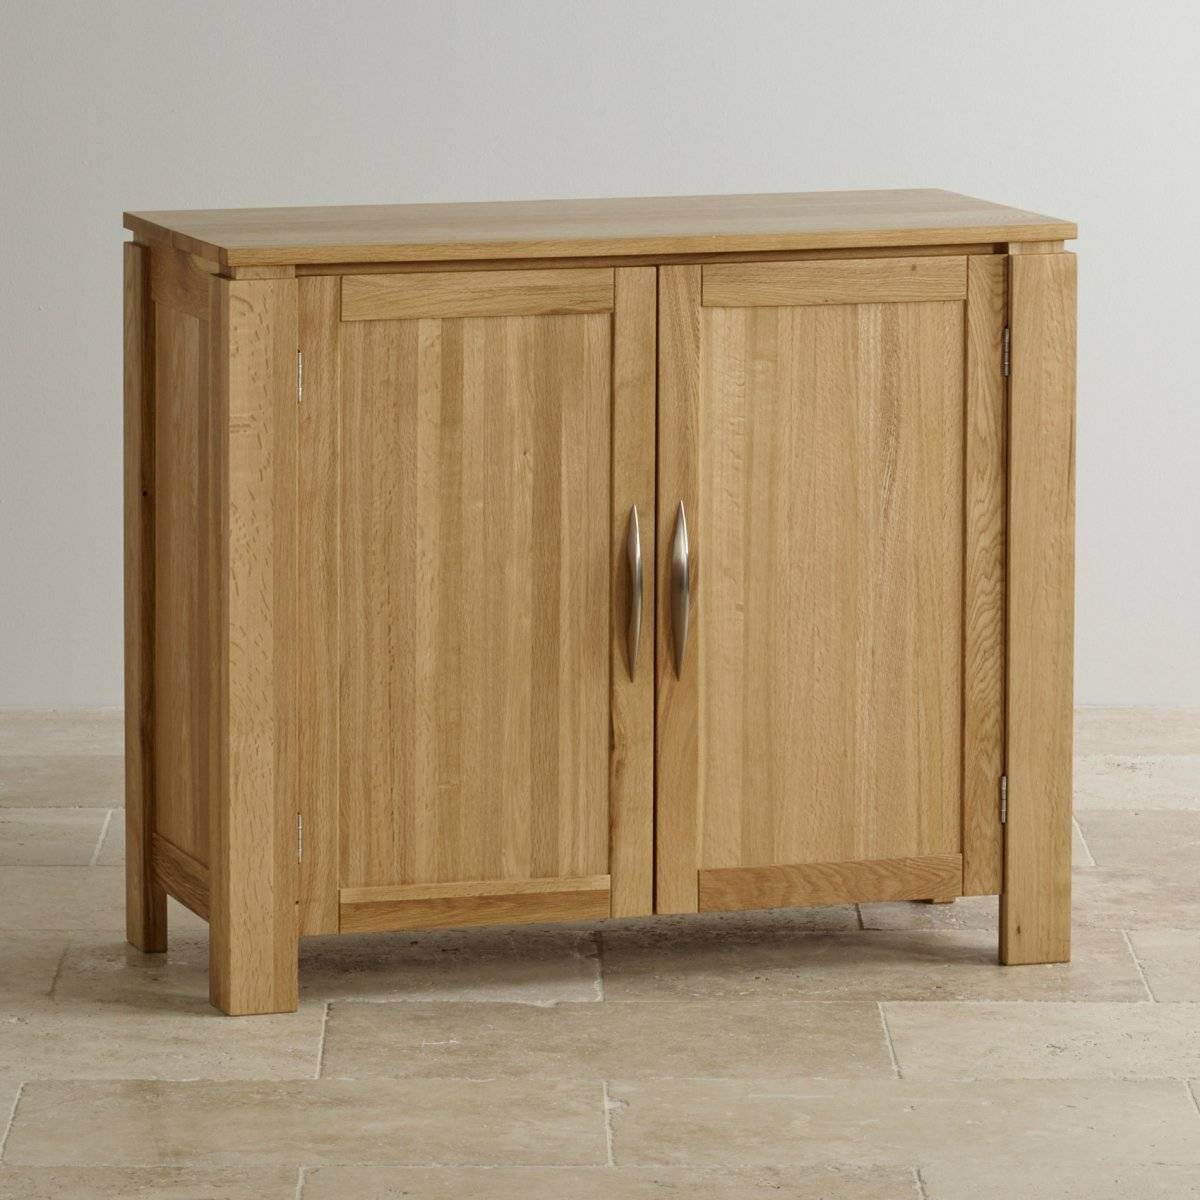 Galway Small Sideboard In Natural Solid Oak   Oak Furniture Land pertaining to Narrow Oak Sideboards (Image 9 of 30)